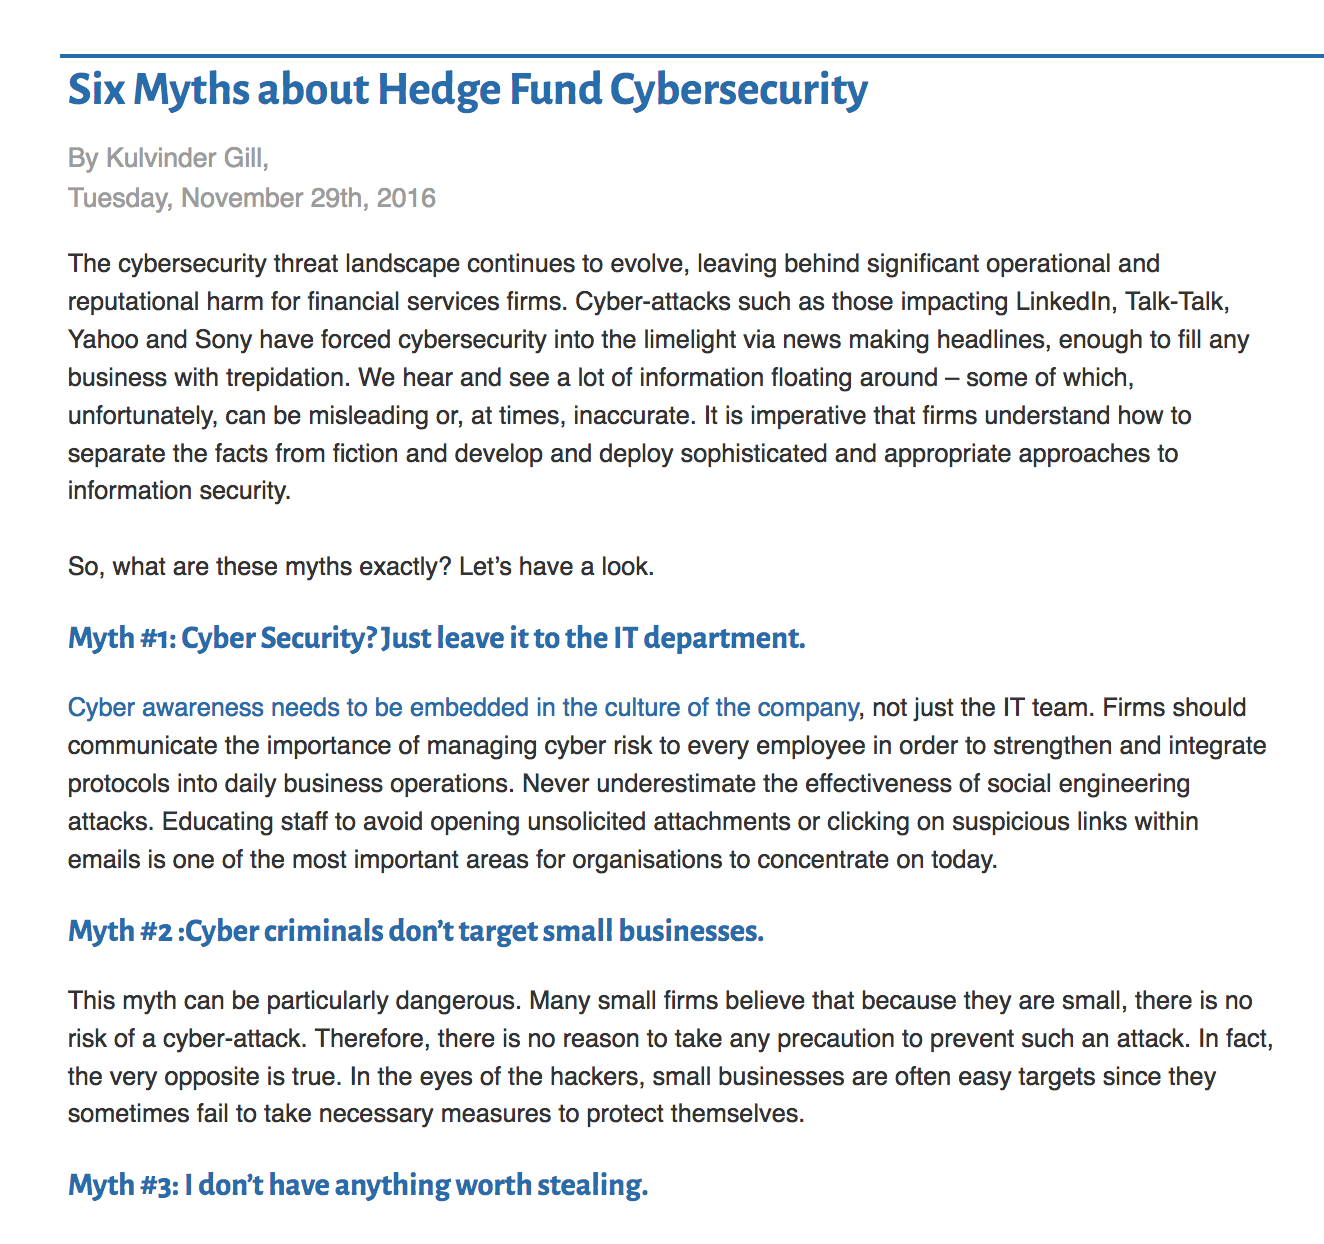 Six Myths about Hedge Fund Cybersecurity